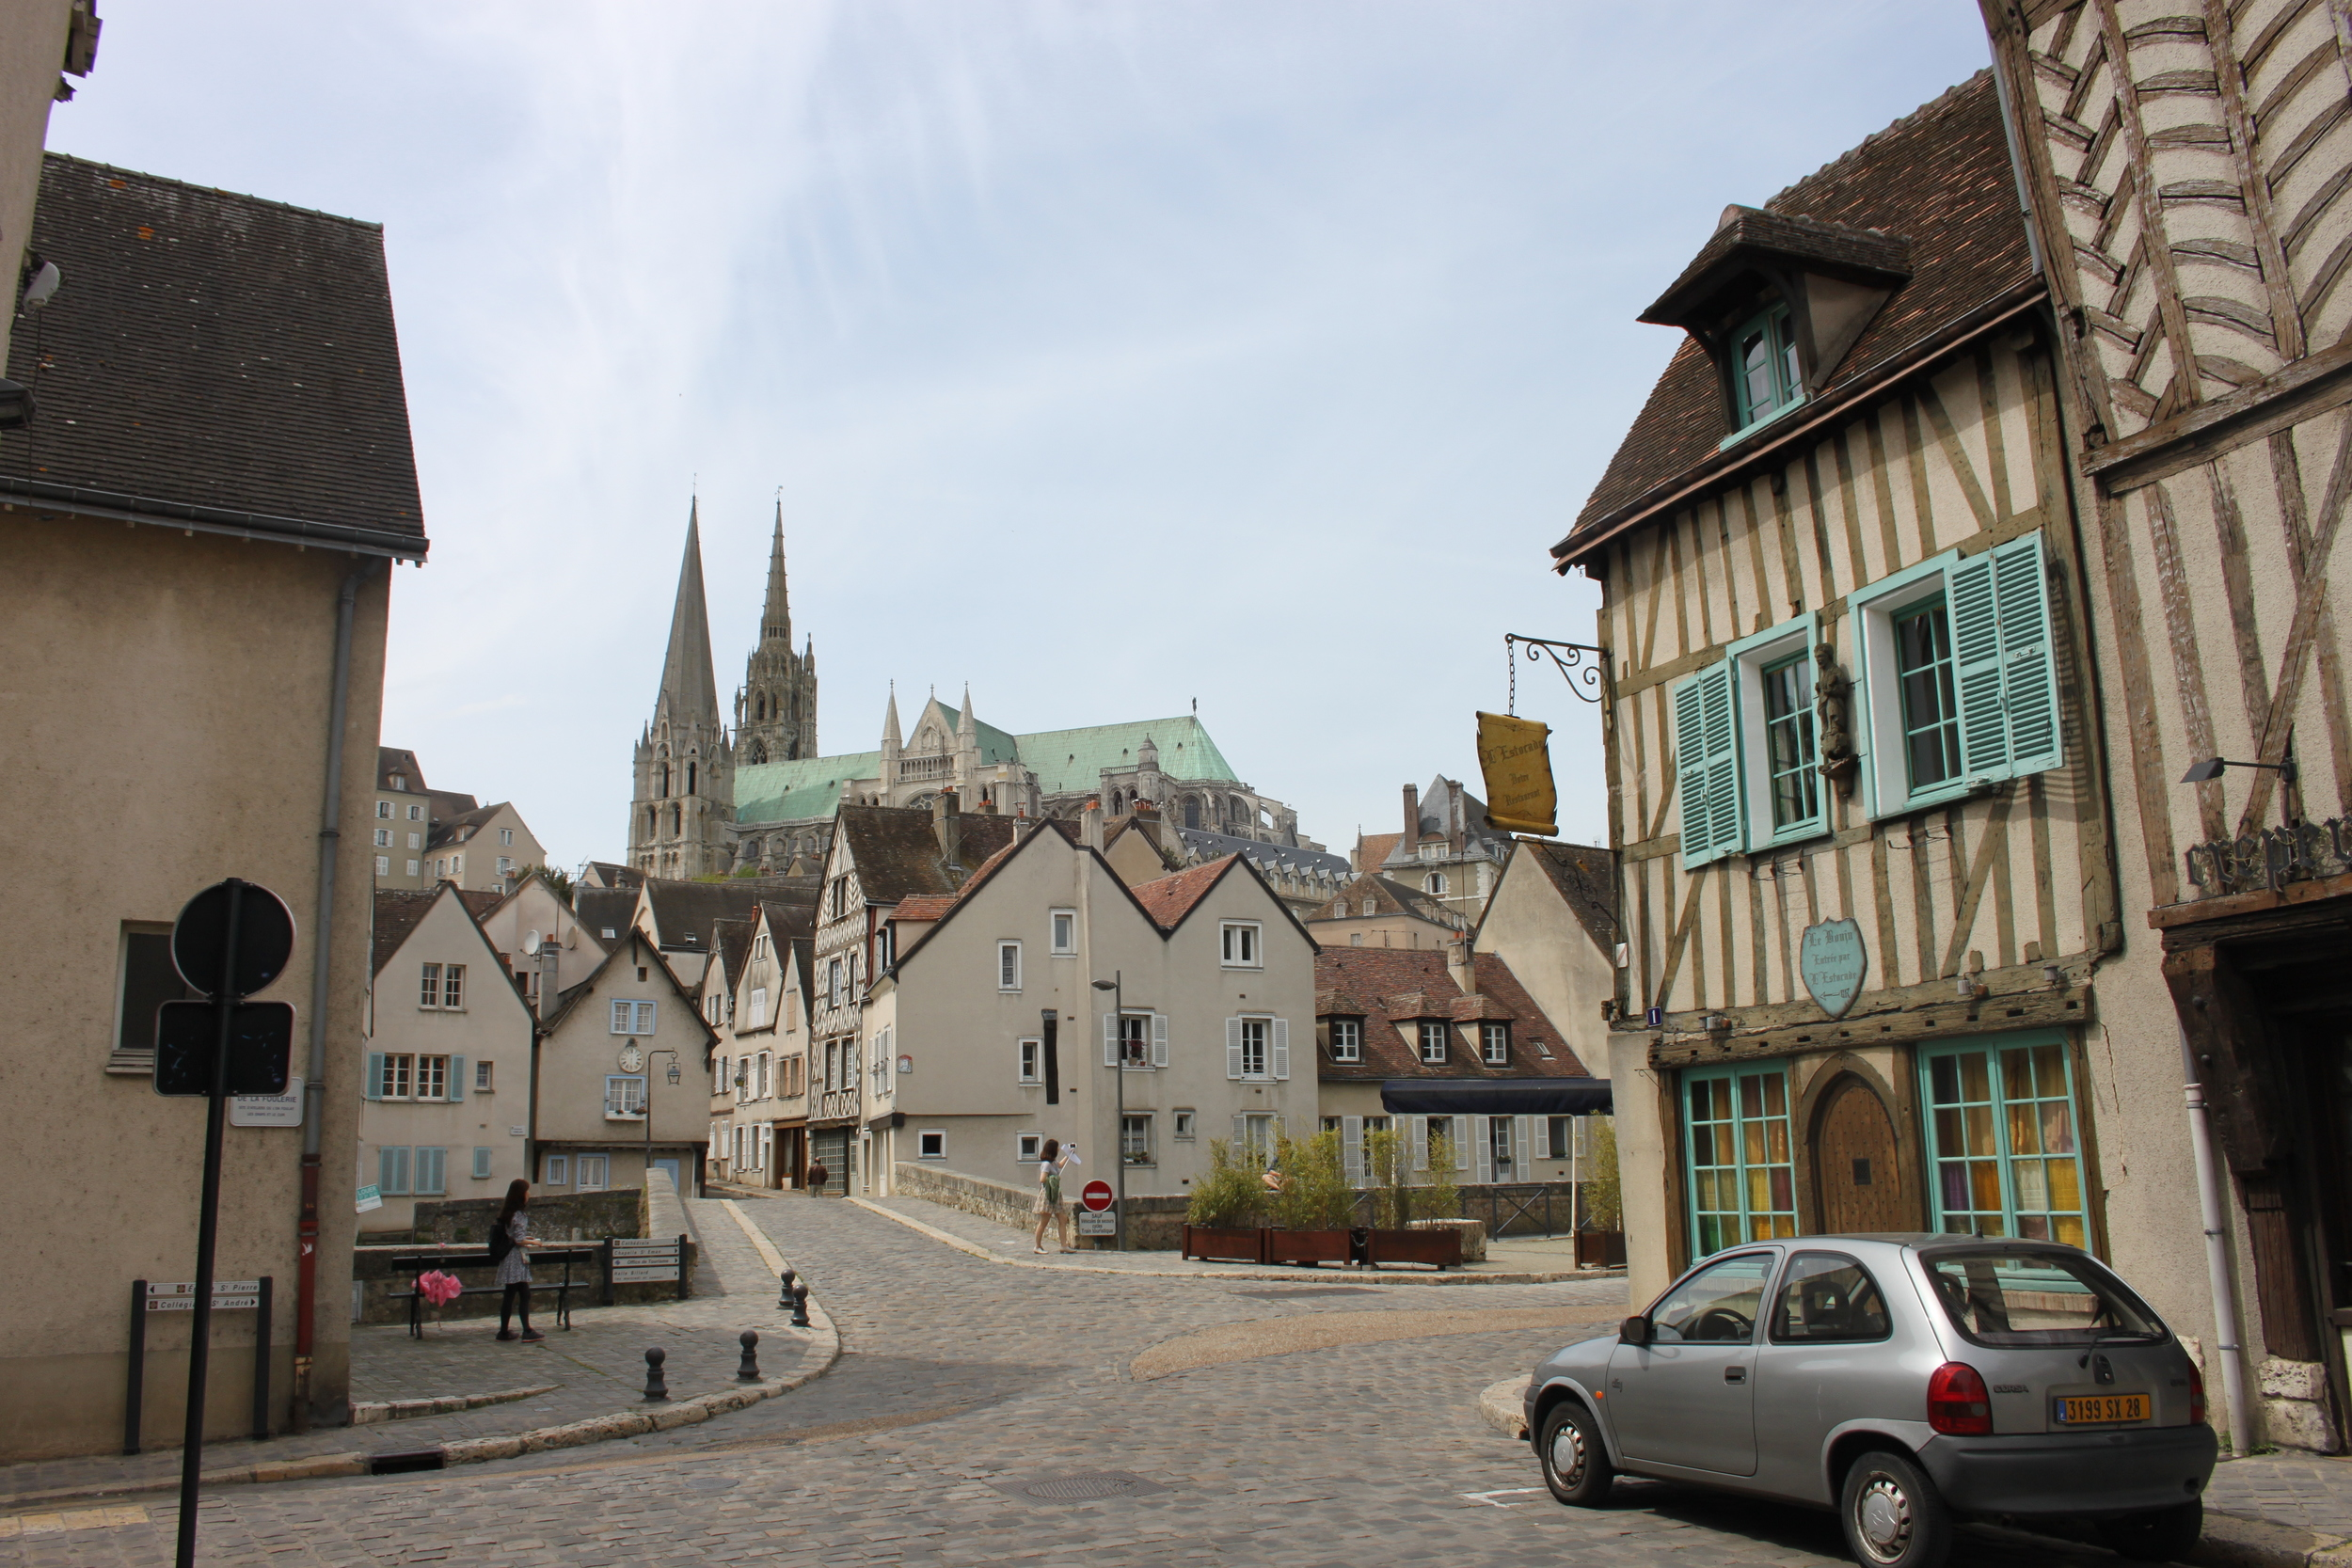 Chartres from the bottom of the hill /Anna Hartley